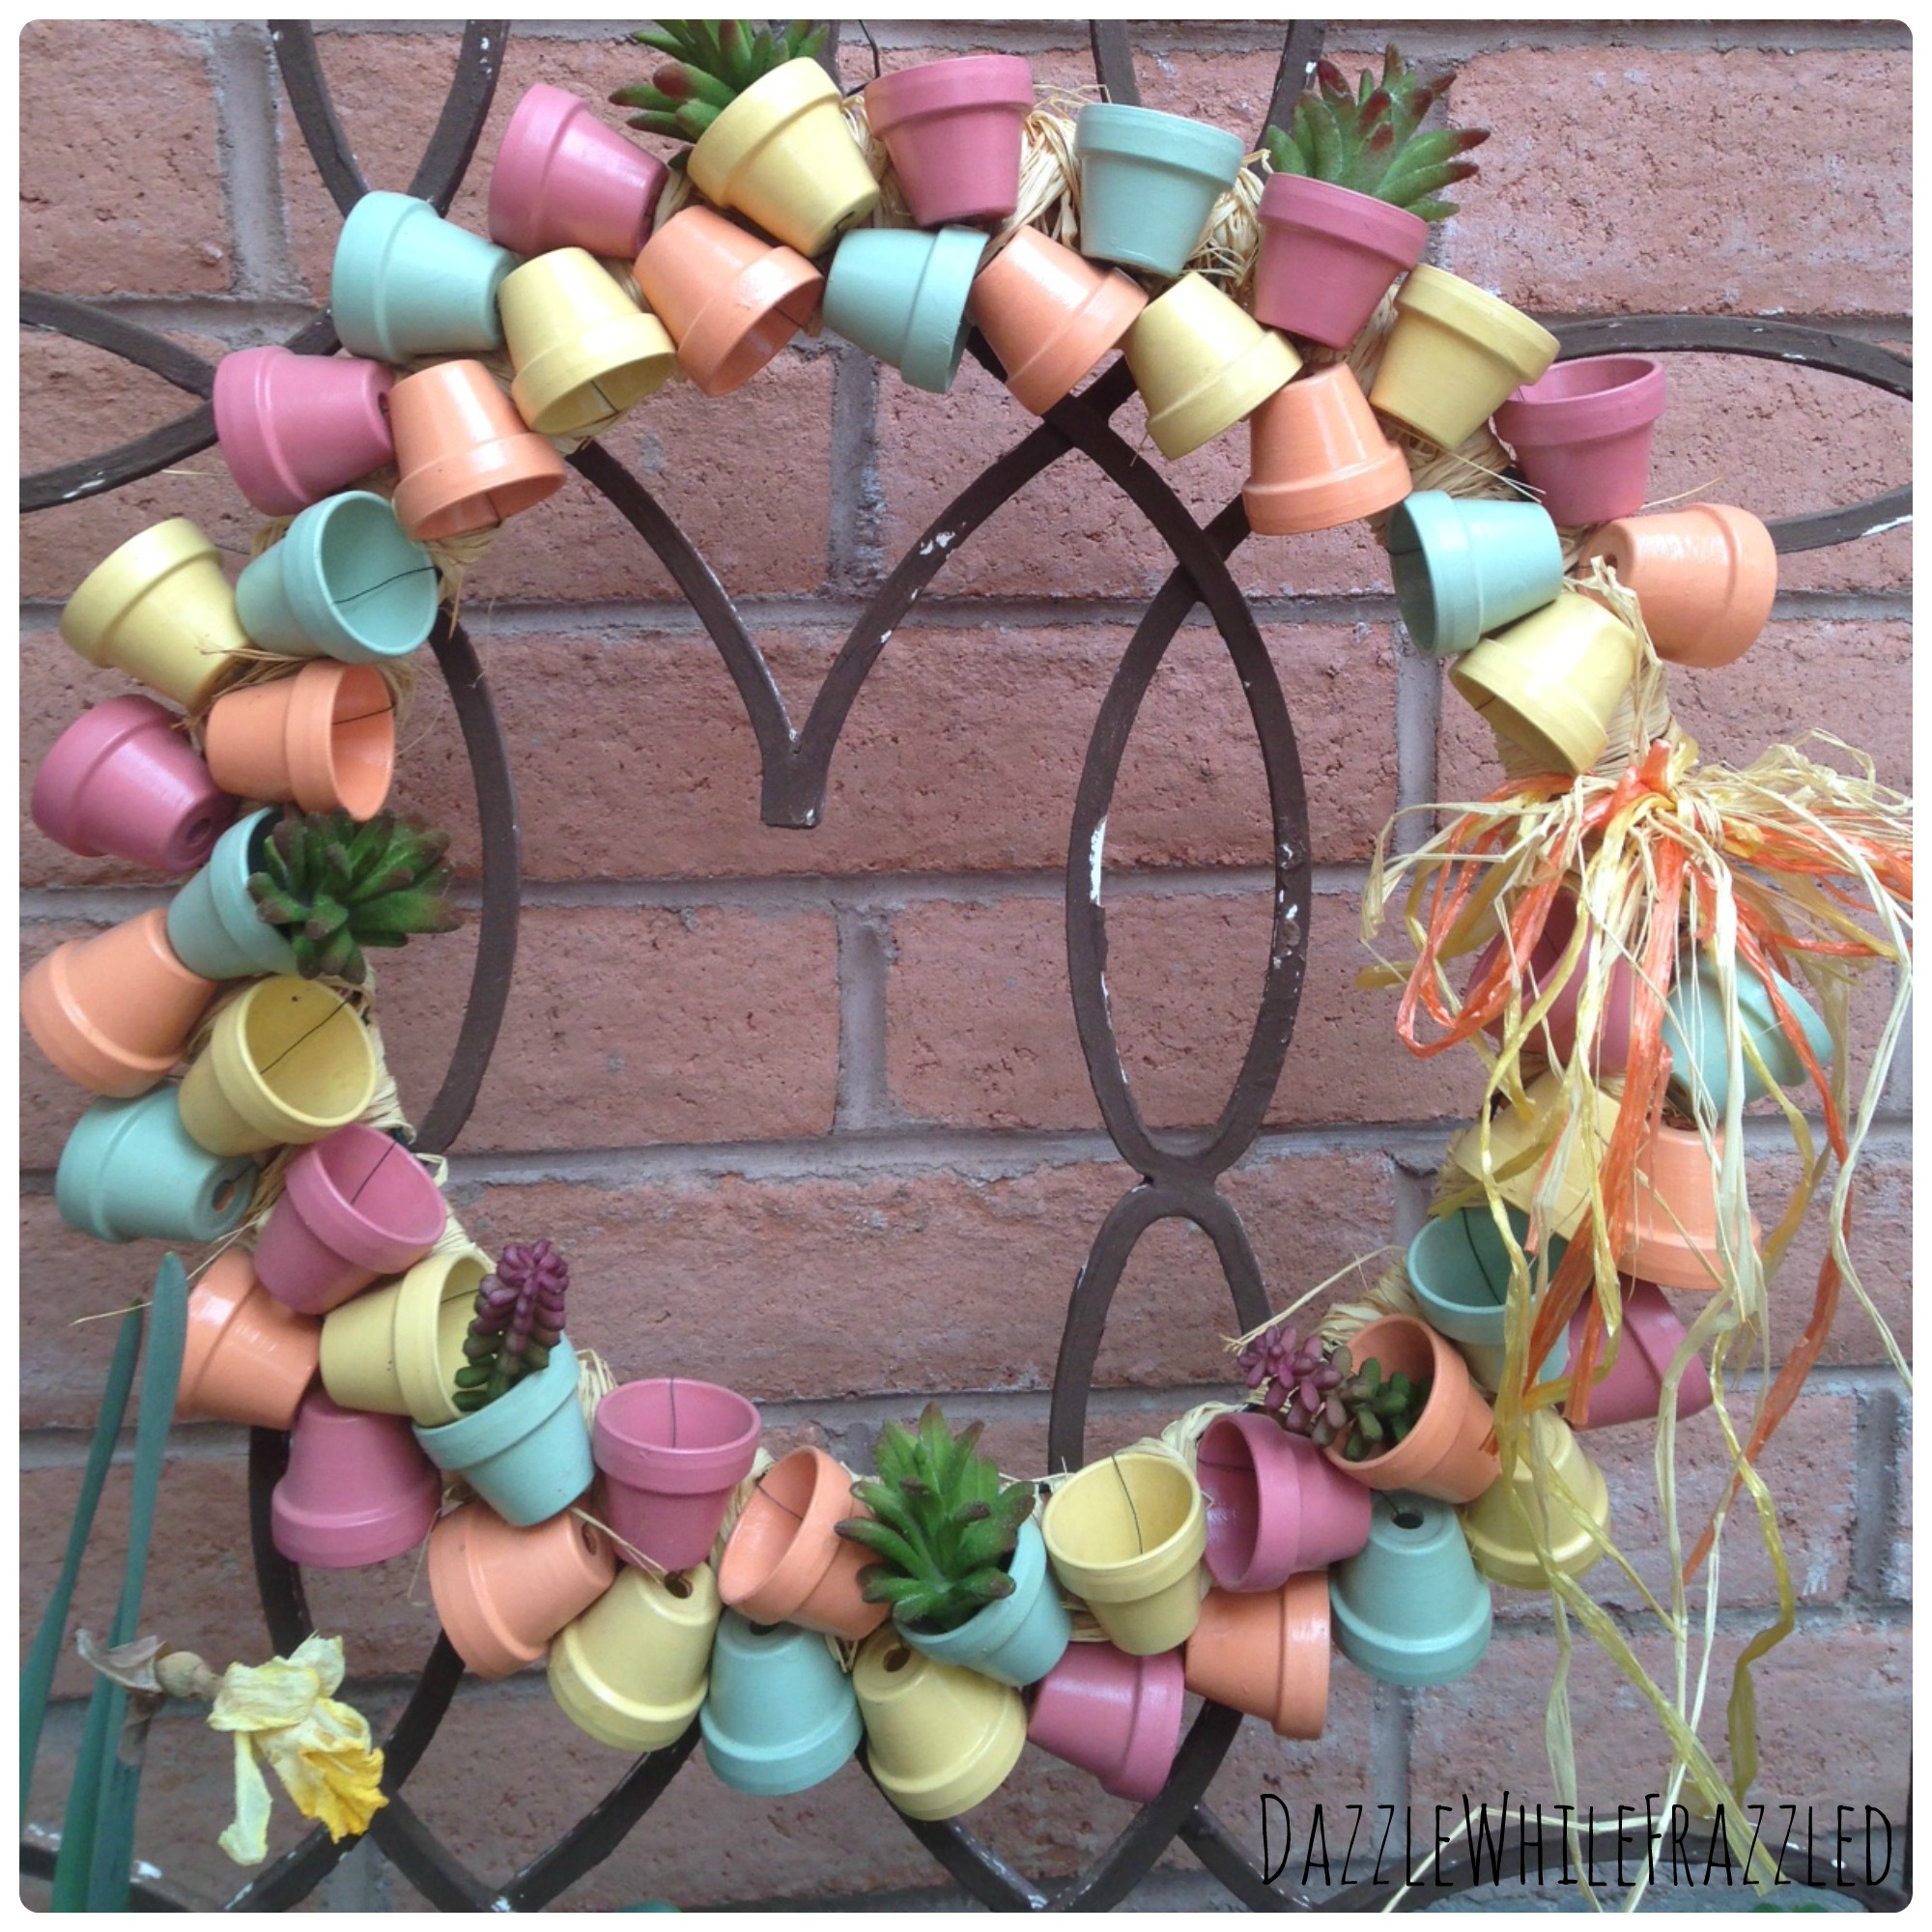 A fabric rag wreath is a fun way to add some color and texture to your front door! Last fall I went on a fun girls weekend trip where we spent two days crafting and scrapbooking.